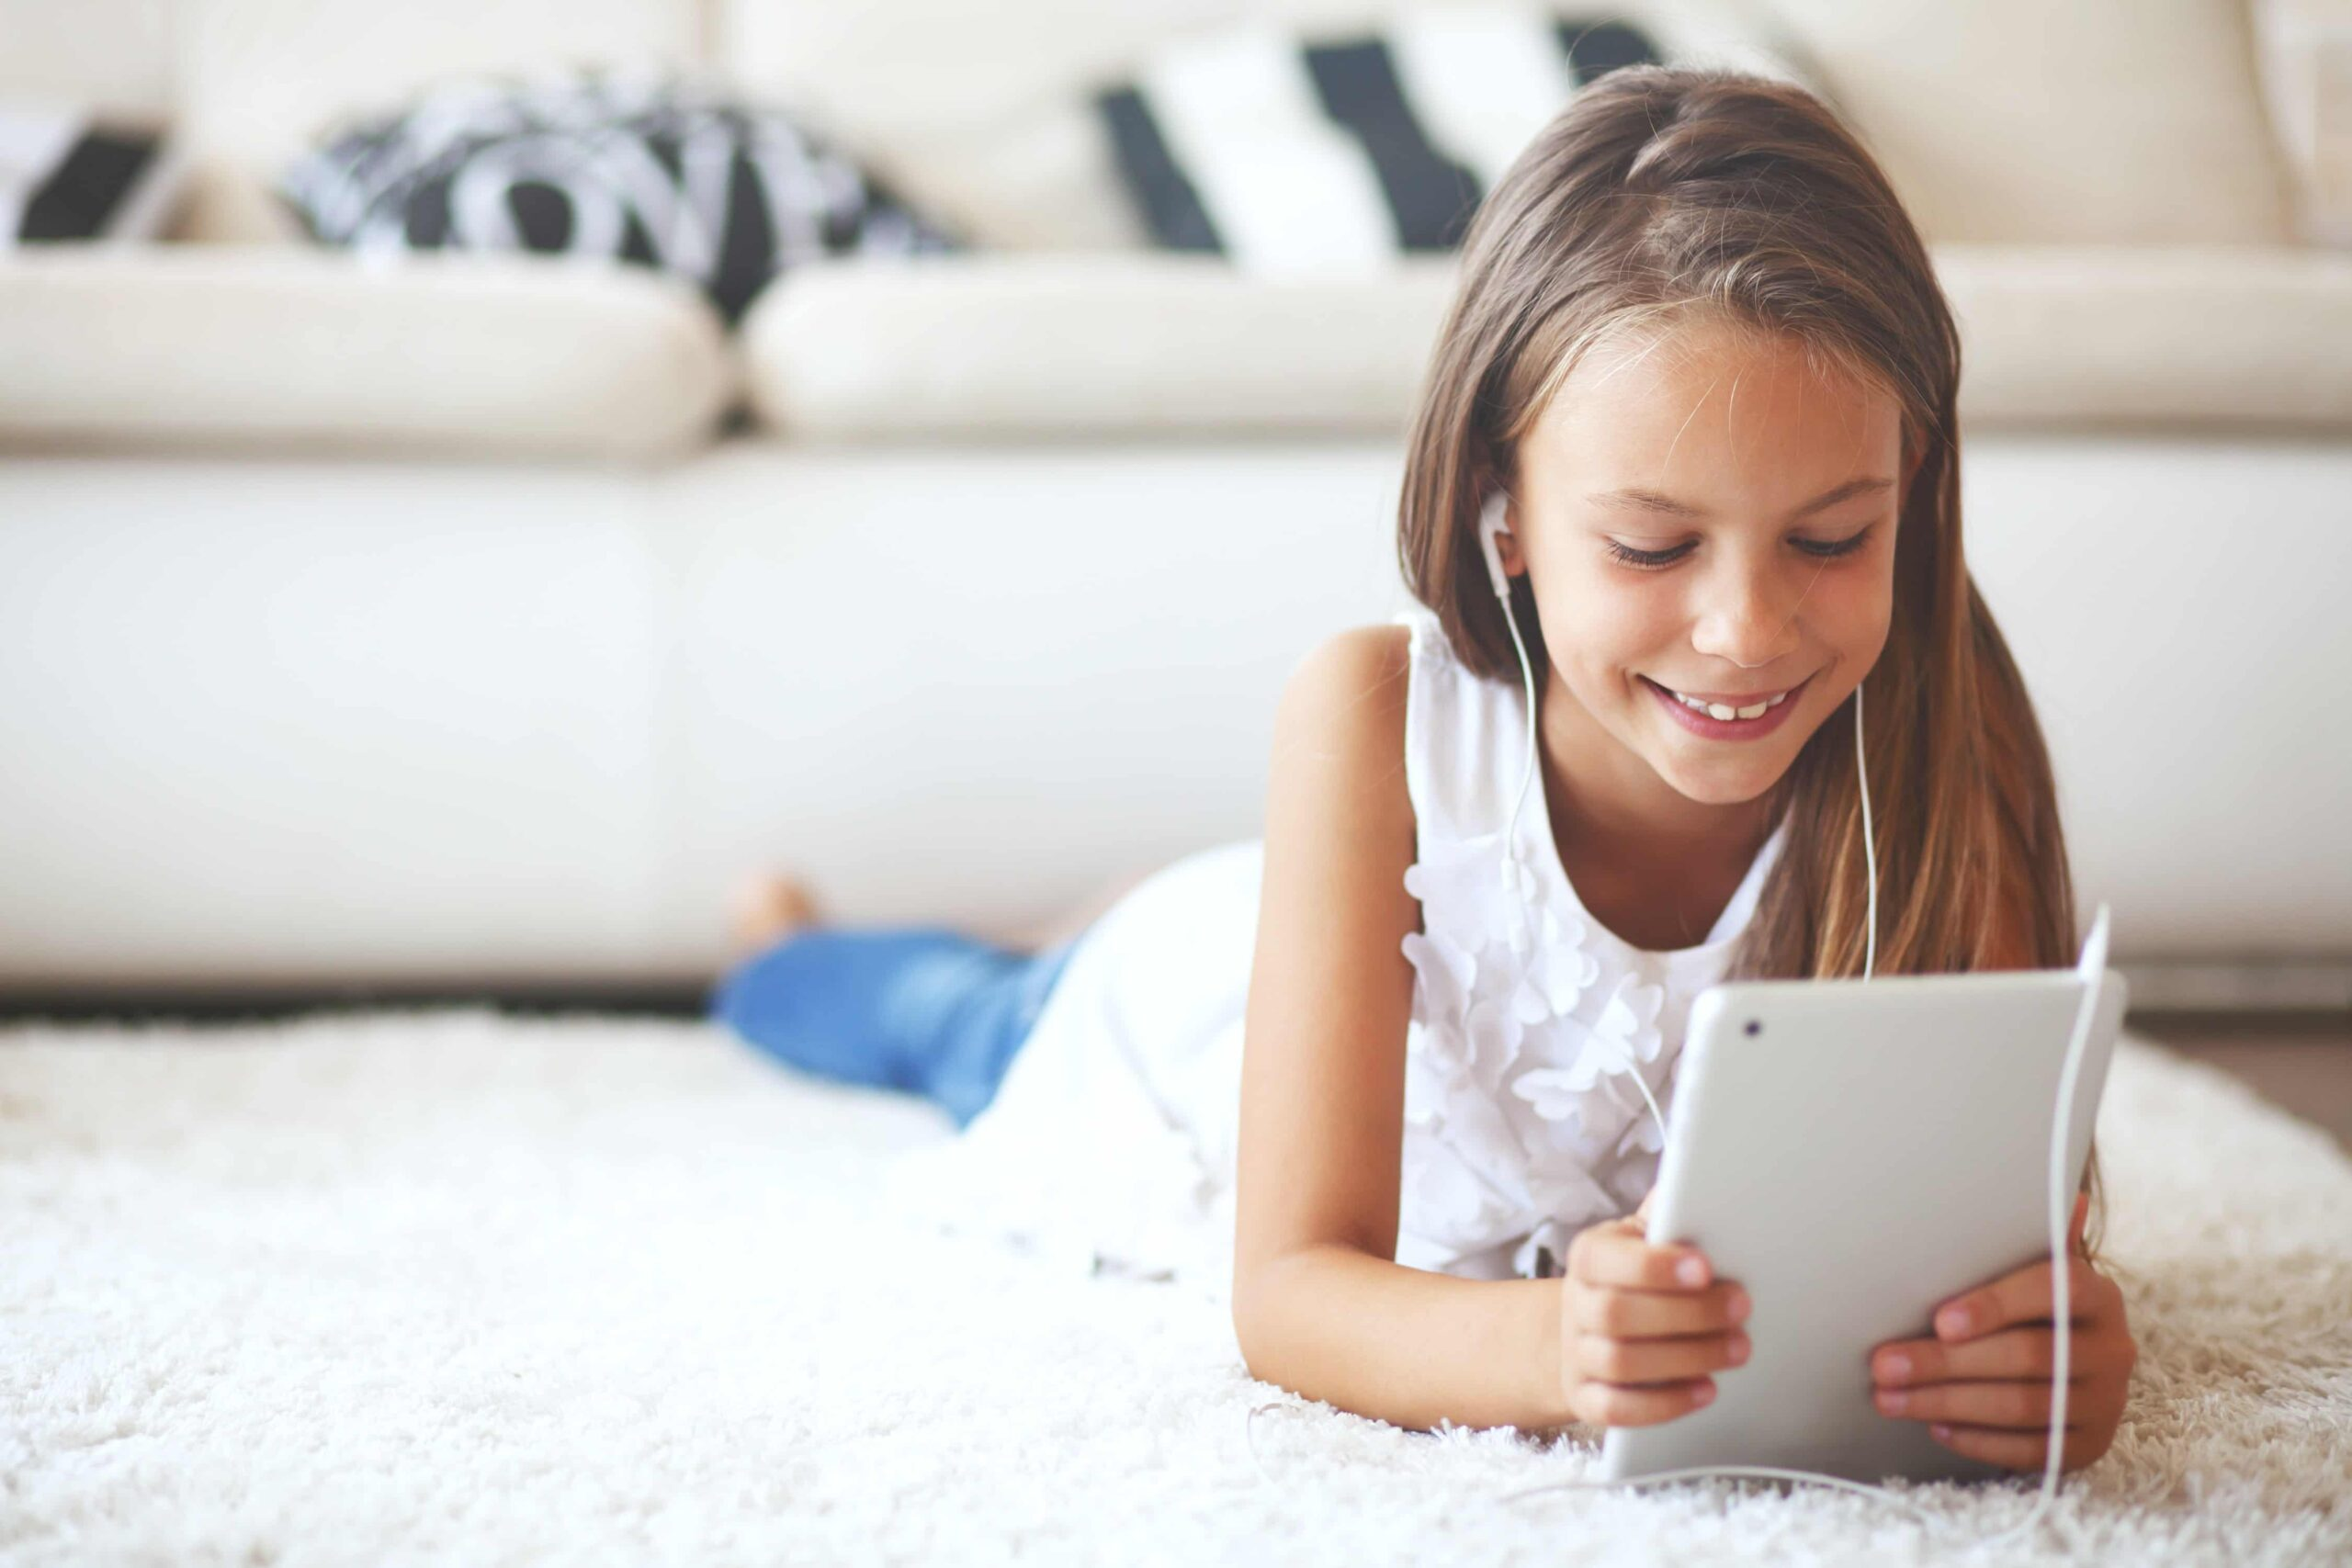 Child looks at iPad with earbuds